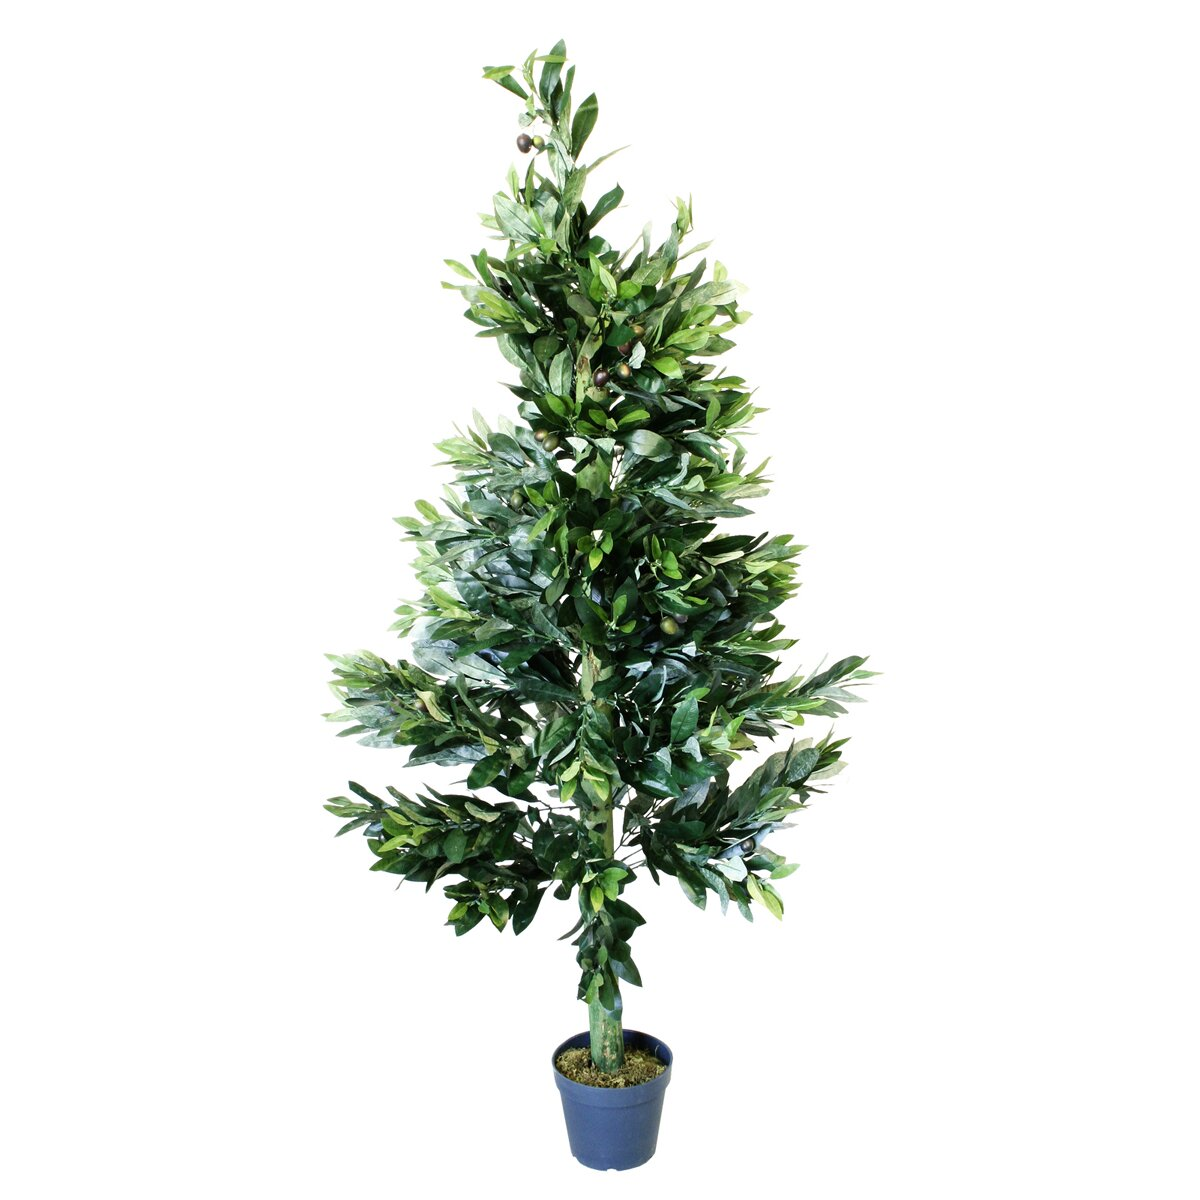 Artificial olive tree wayfair uk for What to plant under olive trees